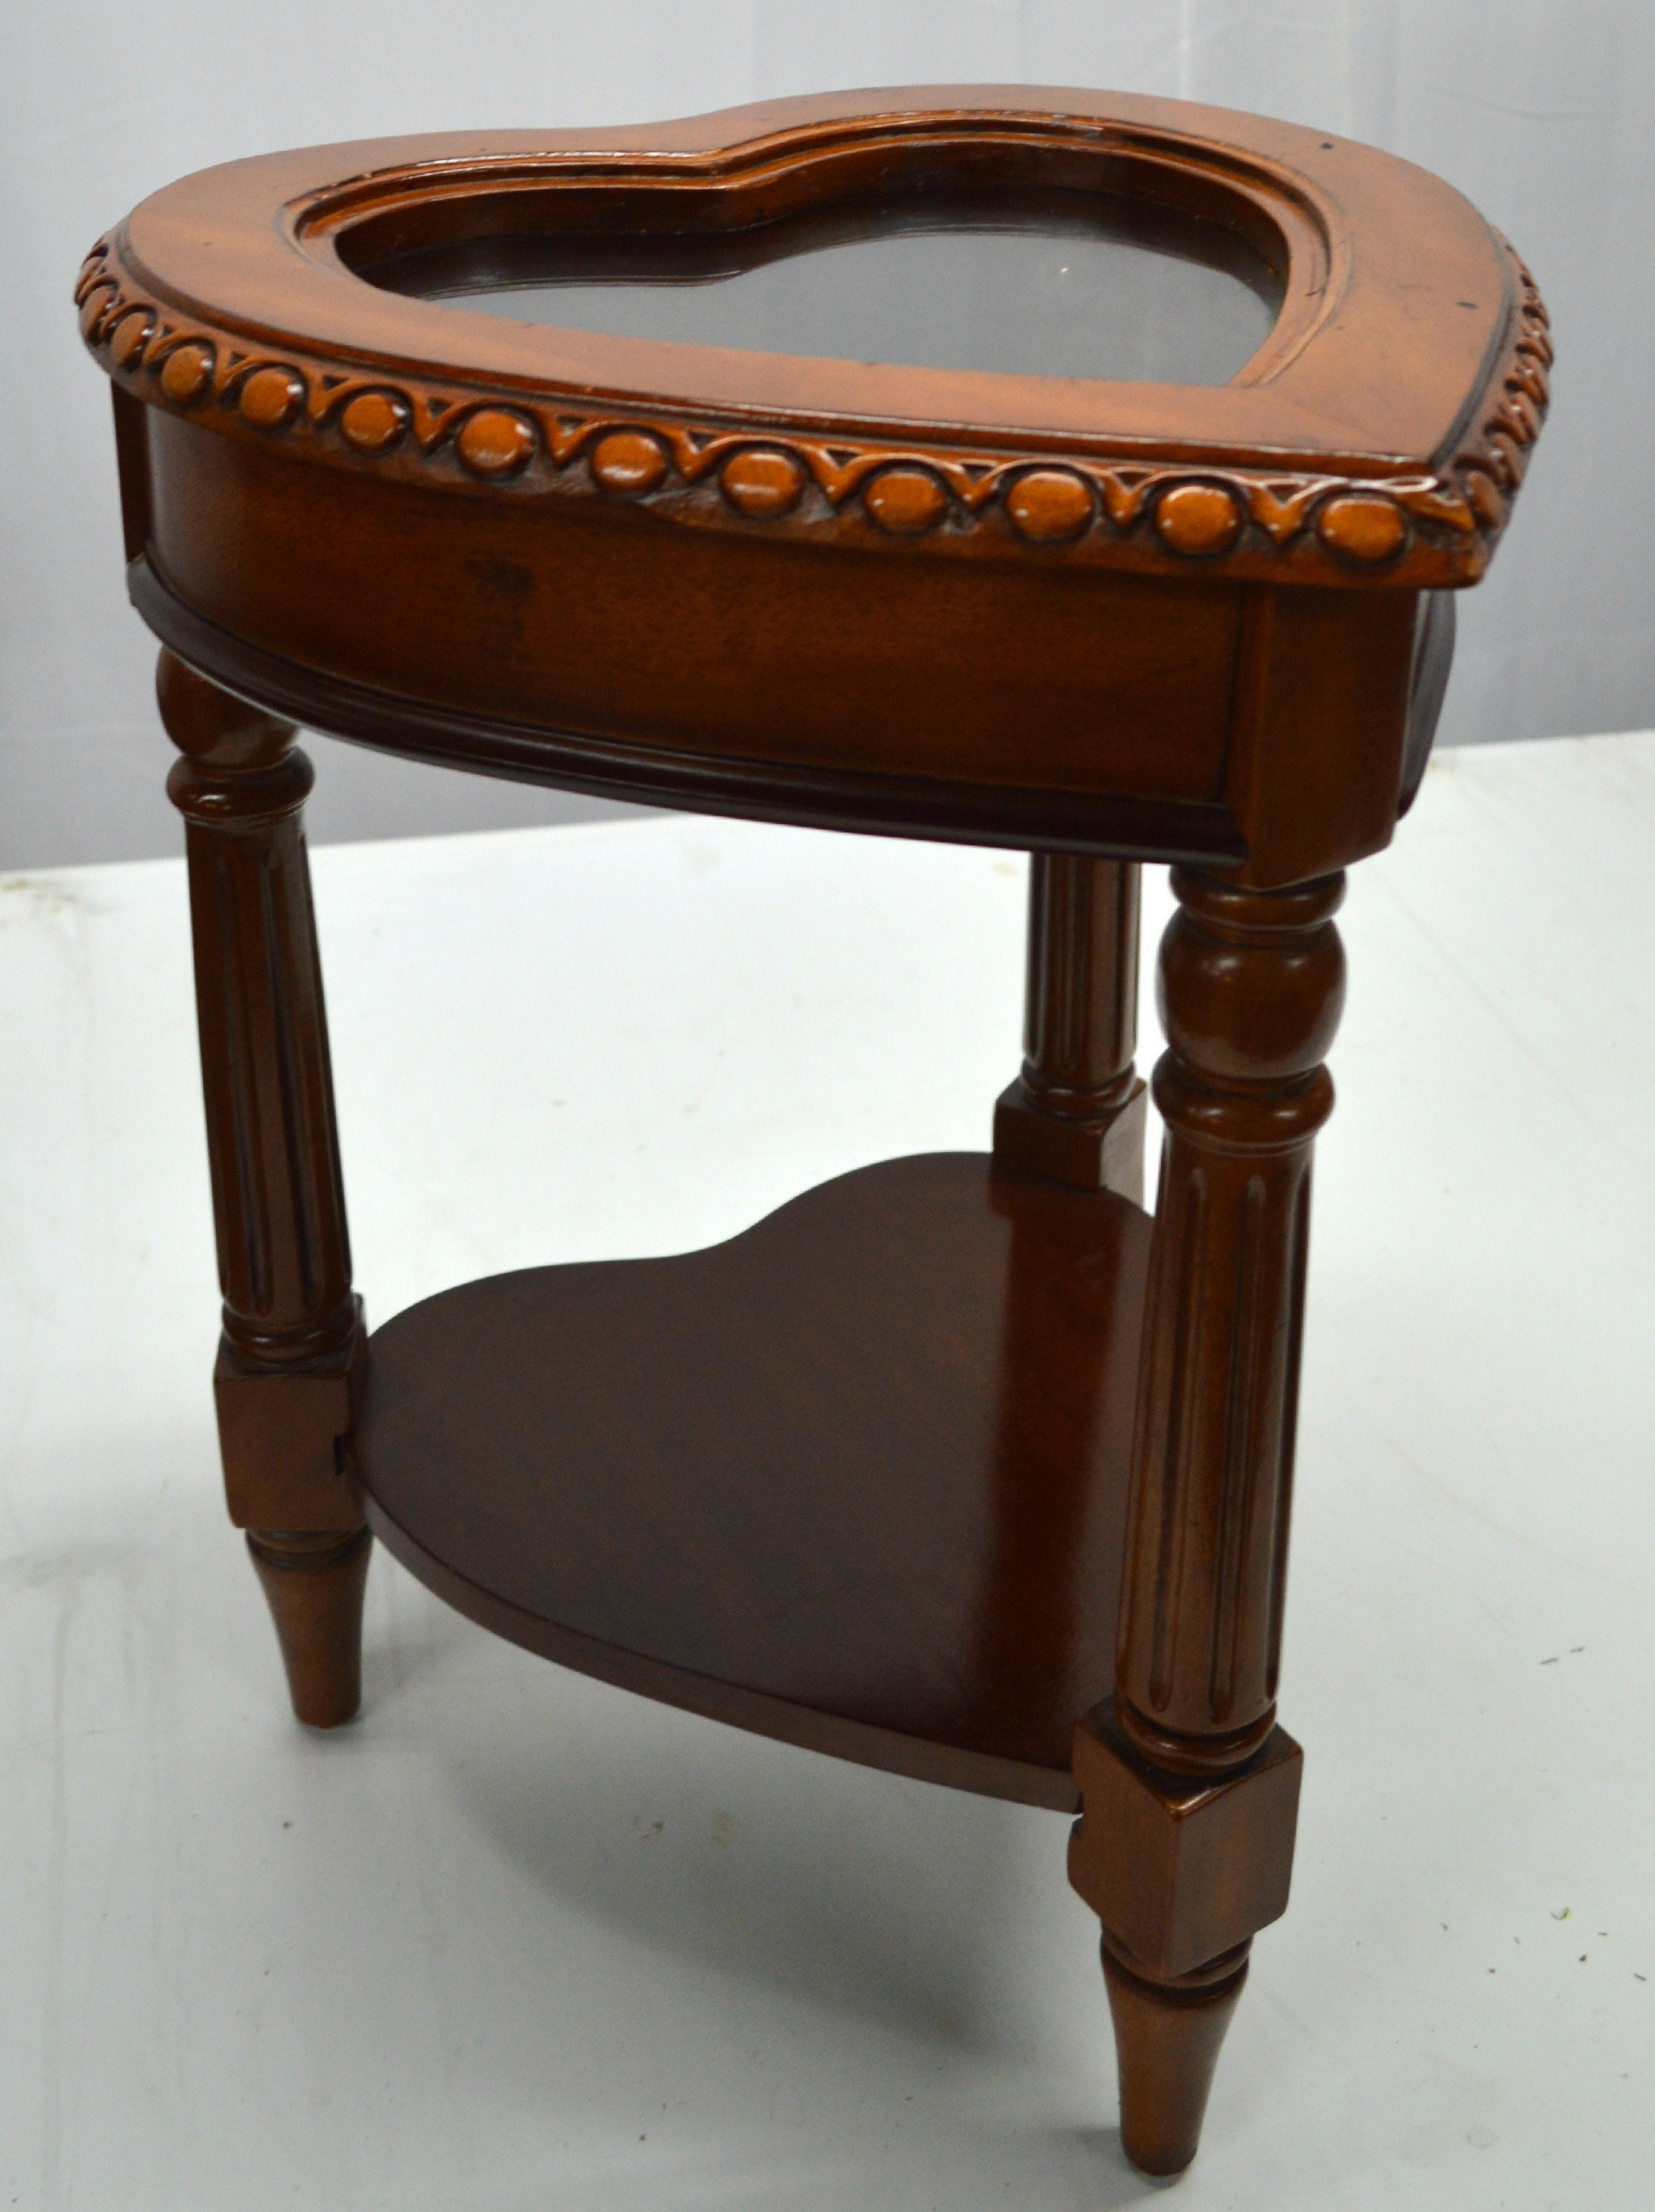 Delicieux Accent Table With Top Display Case With Glass. Carved Wood Frame Makes  Emphases In The